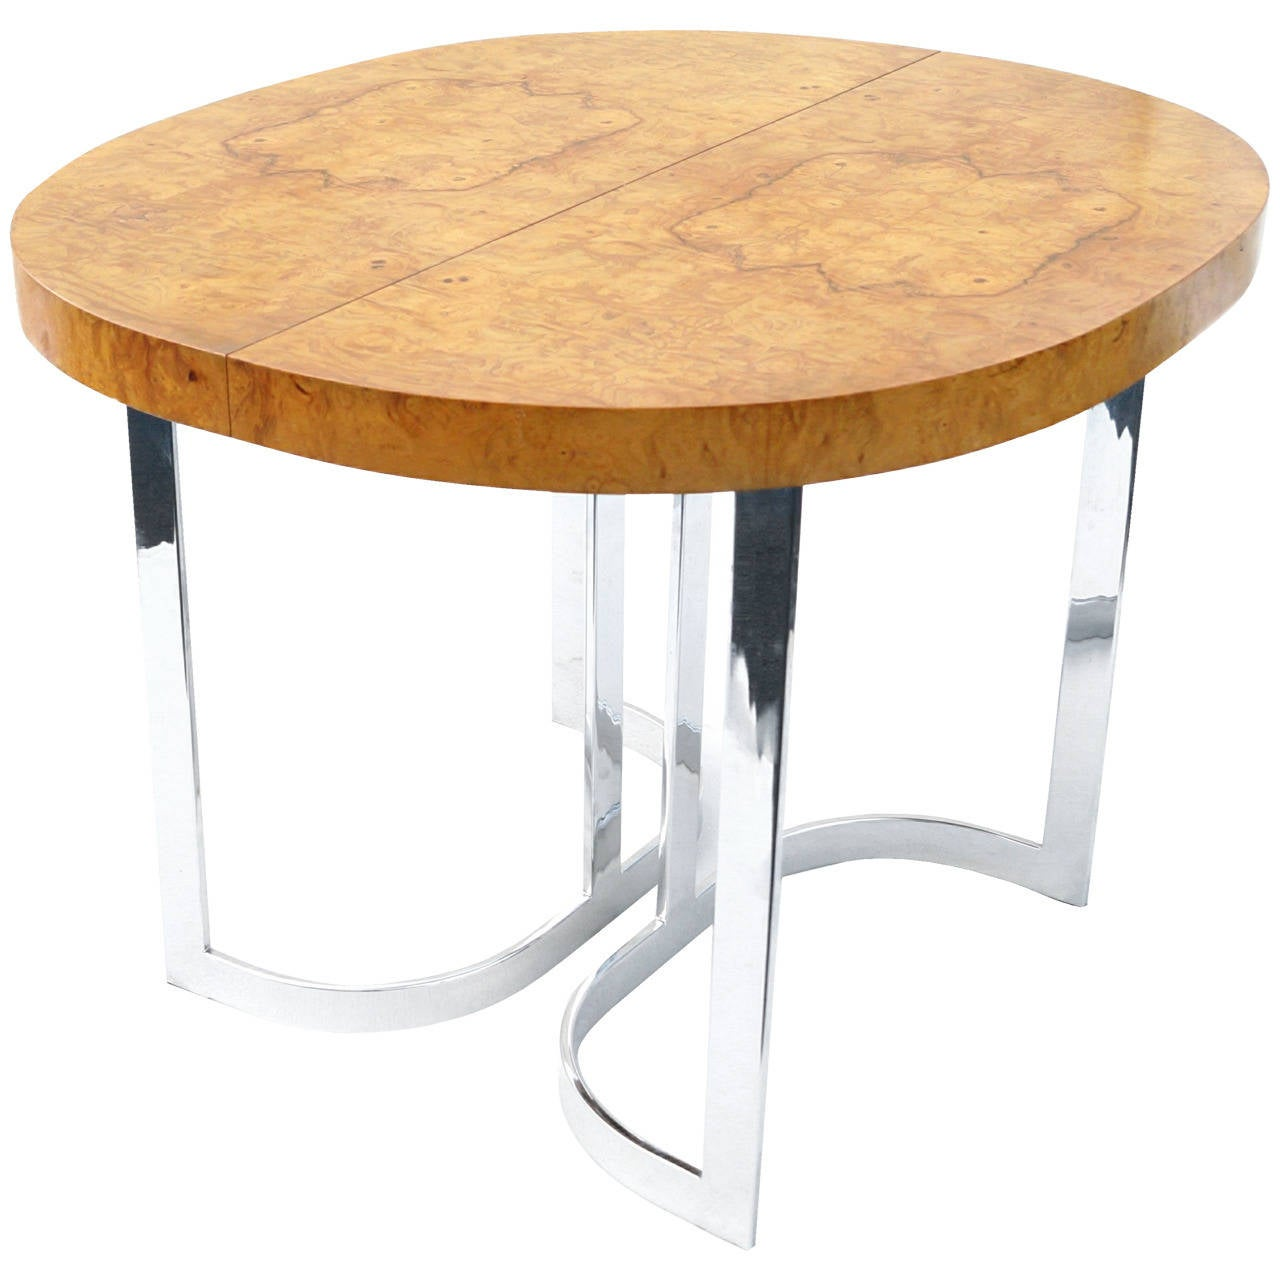 Dining Table For Small Spaces In The Manner Of Milo Baughman At